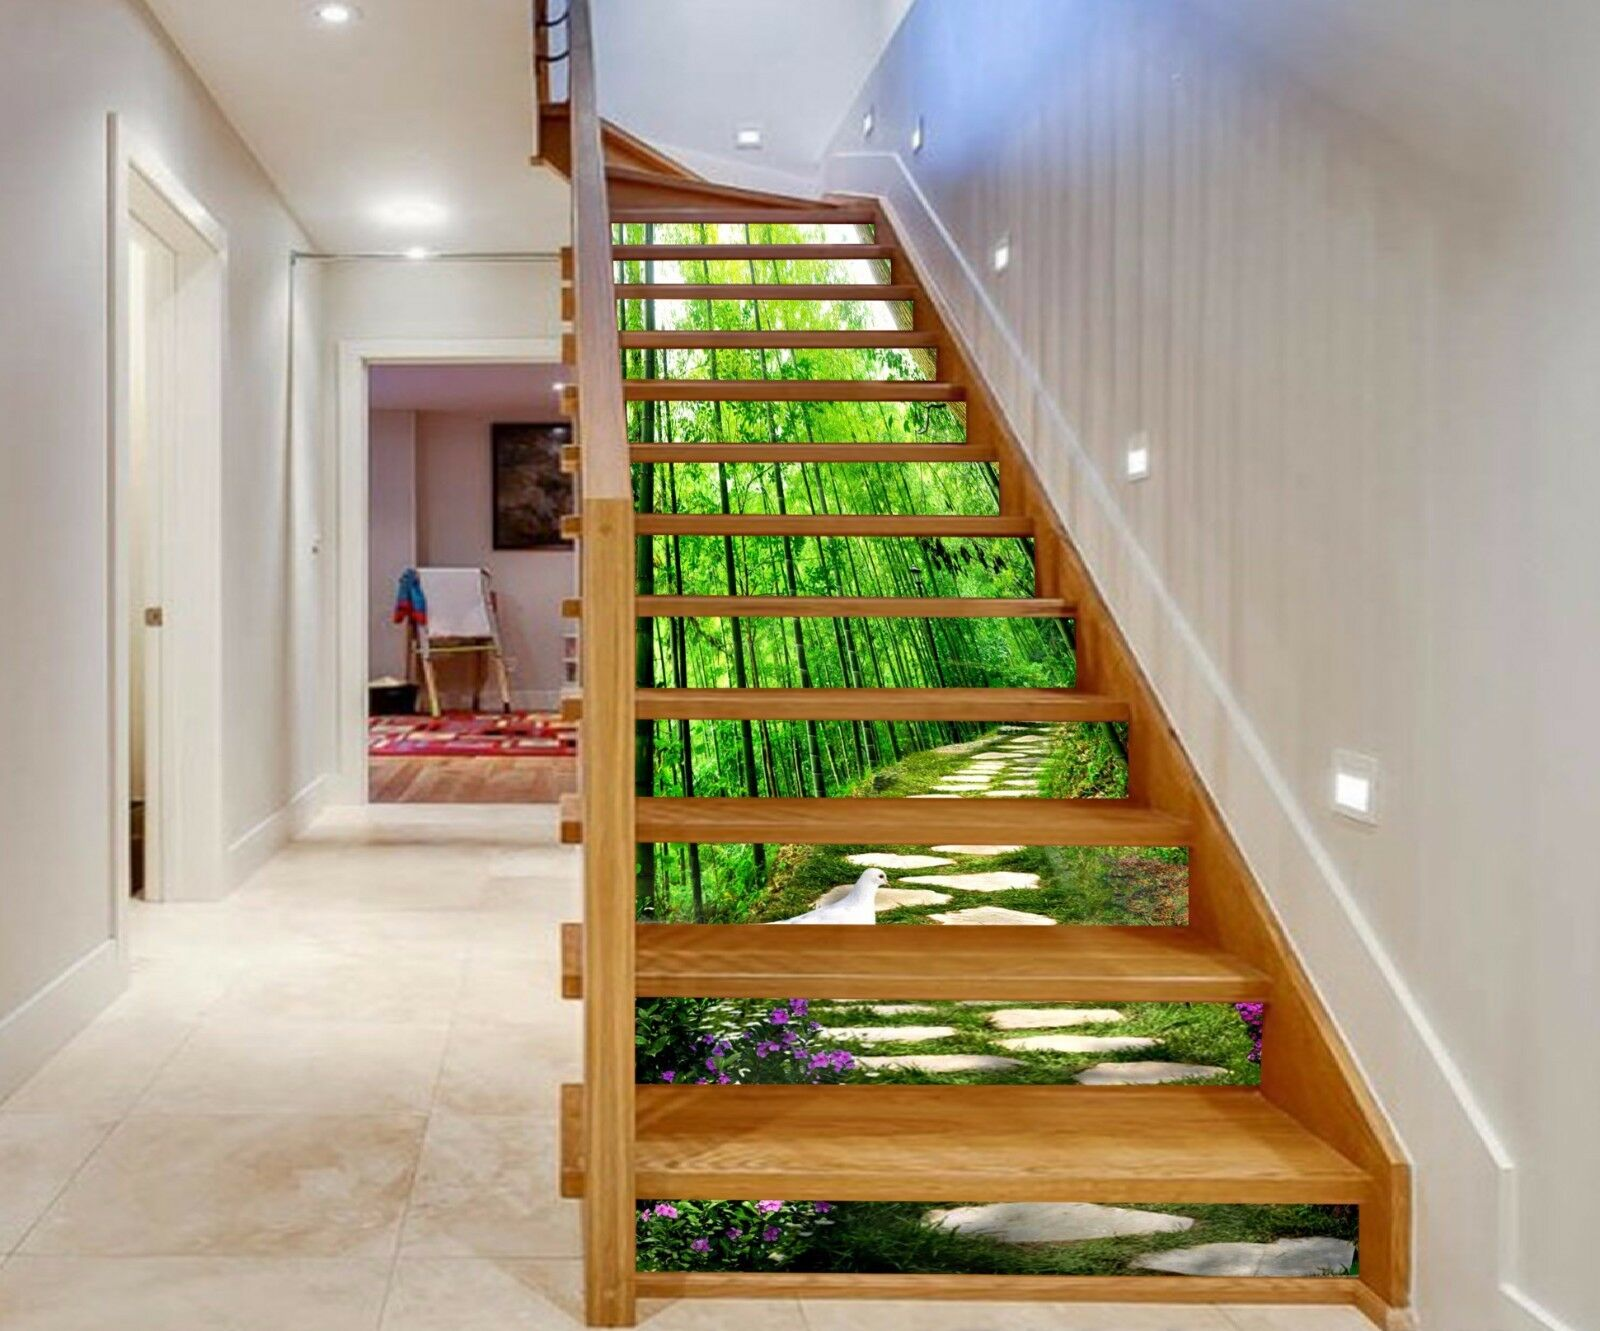 3D Fresh Forest 763 Stair Risers Decoration Photo Mural Vinyl Decal Wallpaper AU